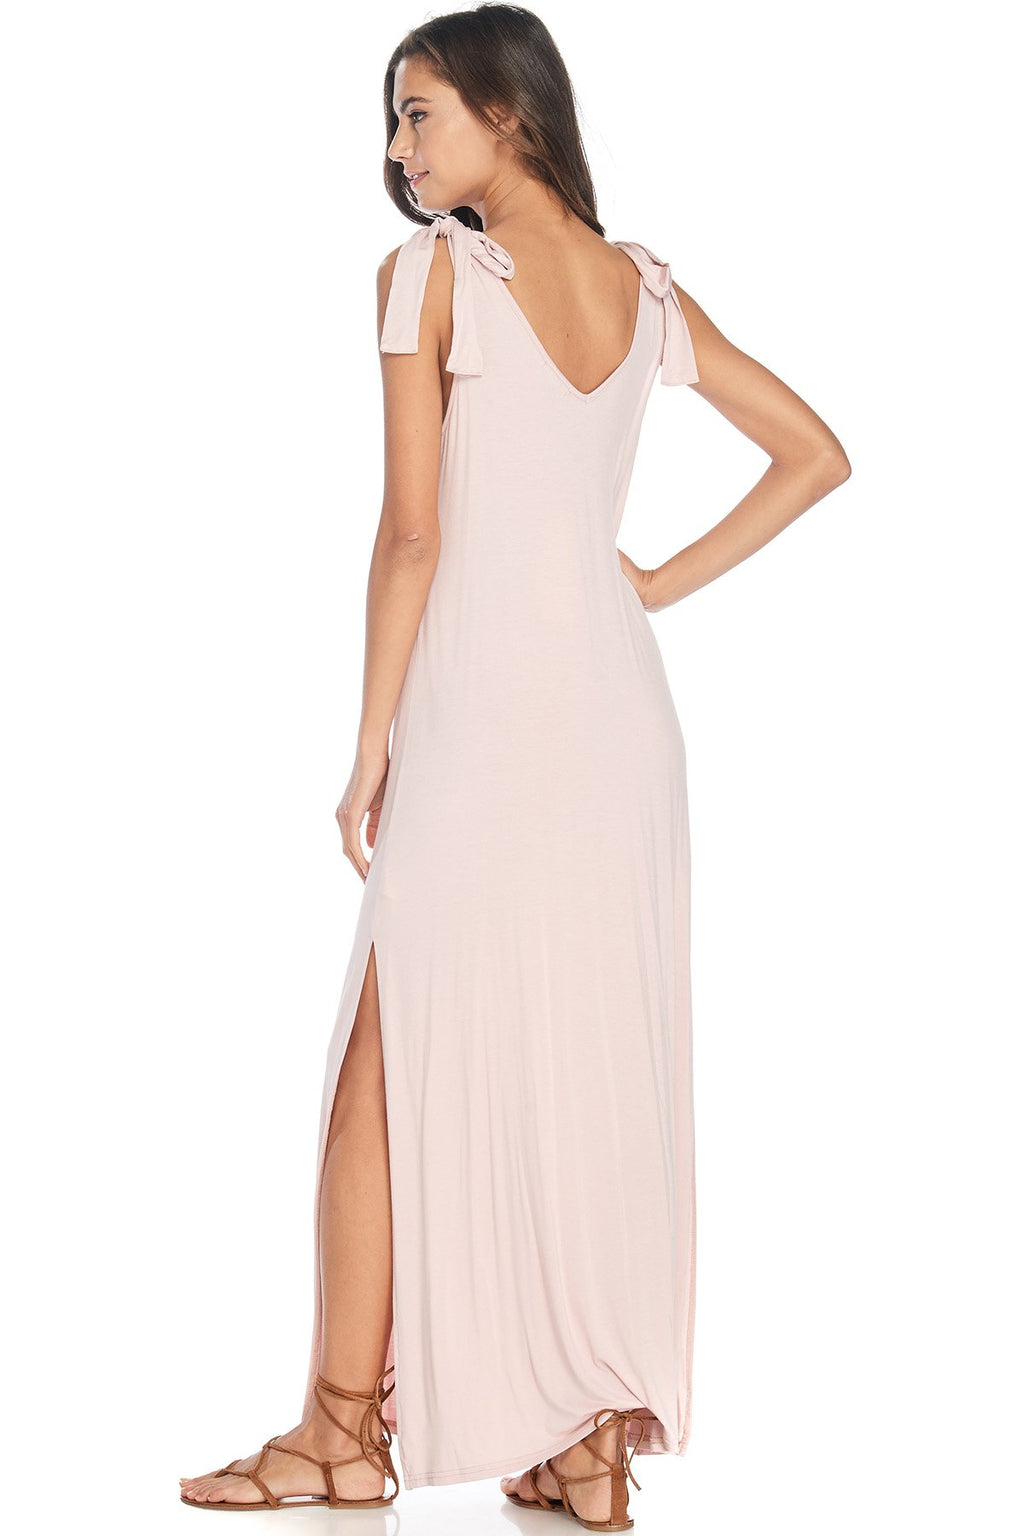 S18-266 Shoulder Tie Maxi Dress